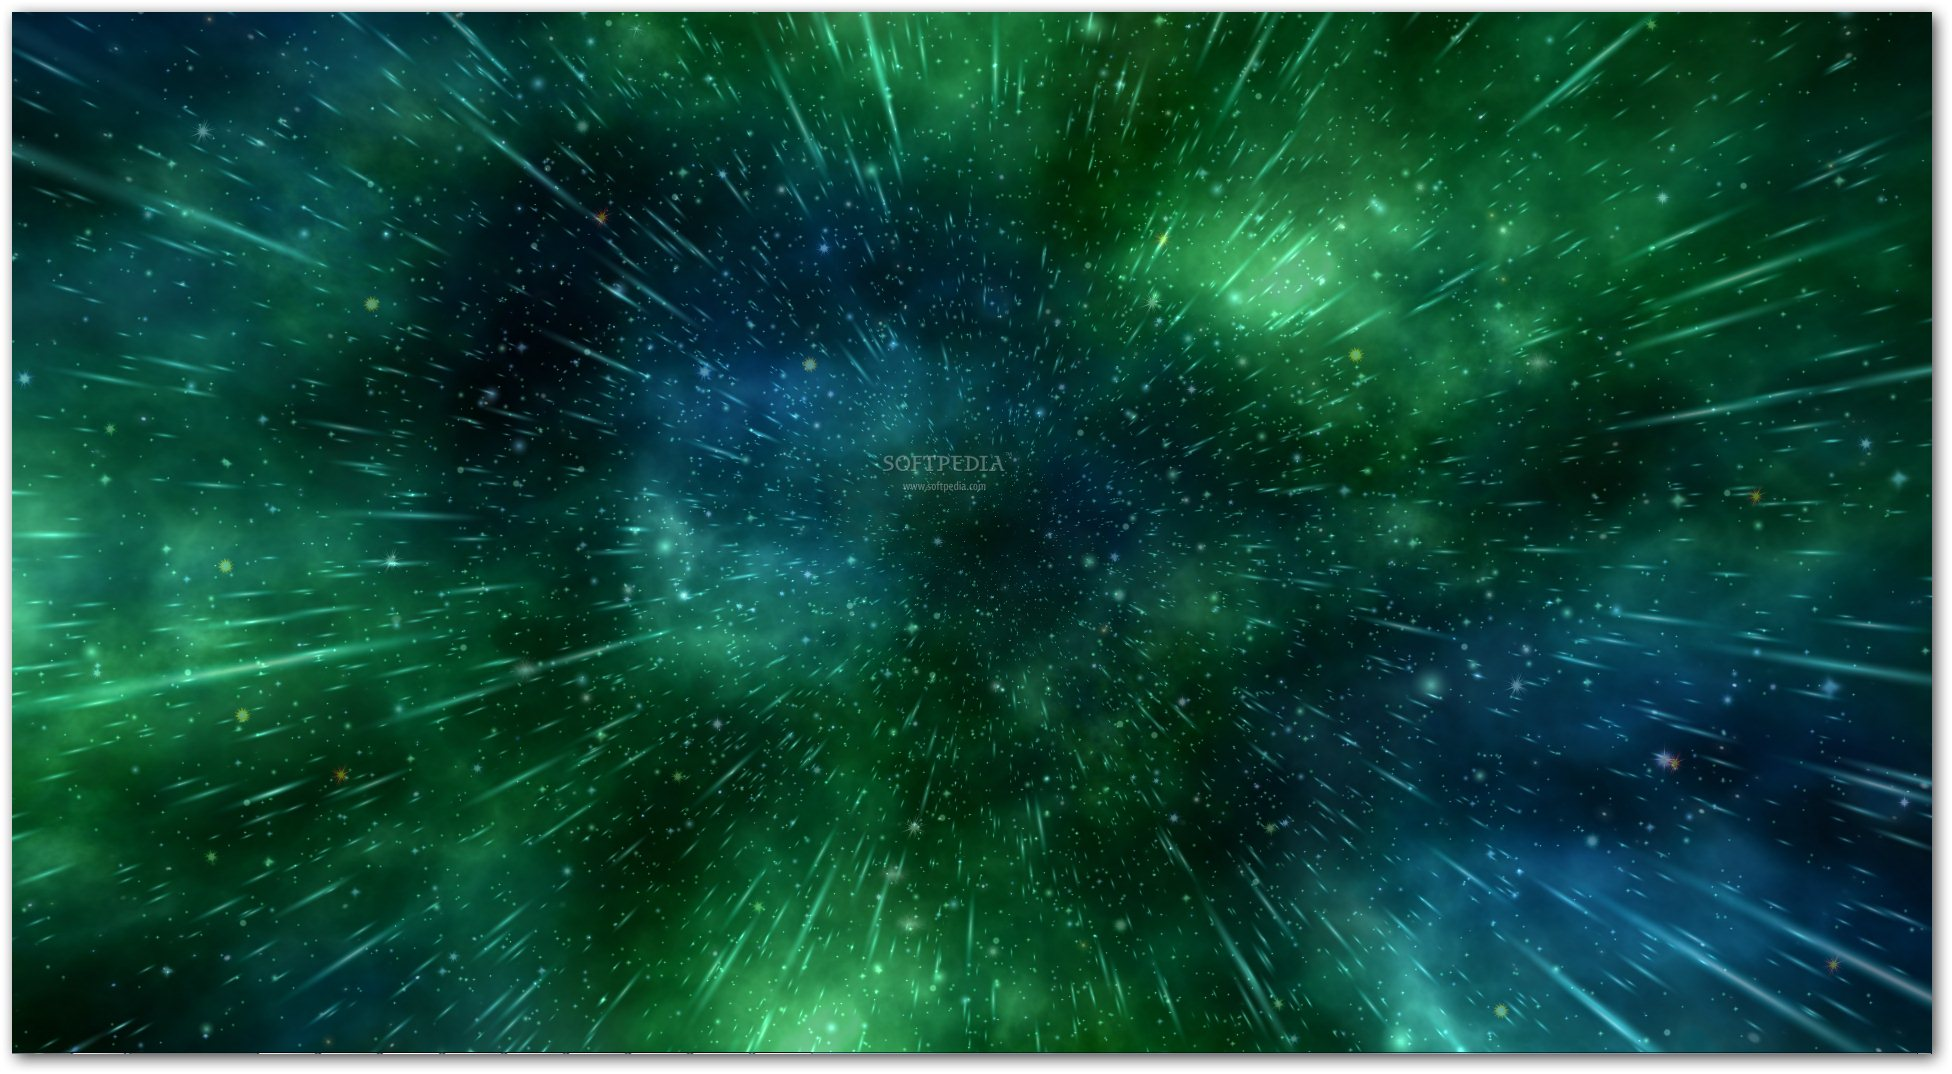 Space animated wallpaper wallpapersafari for Space in 3d